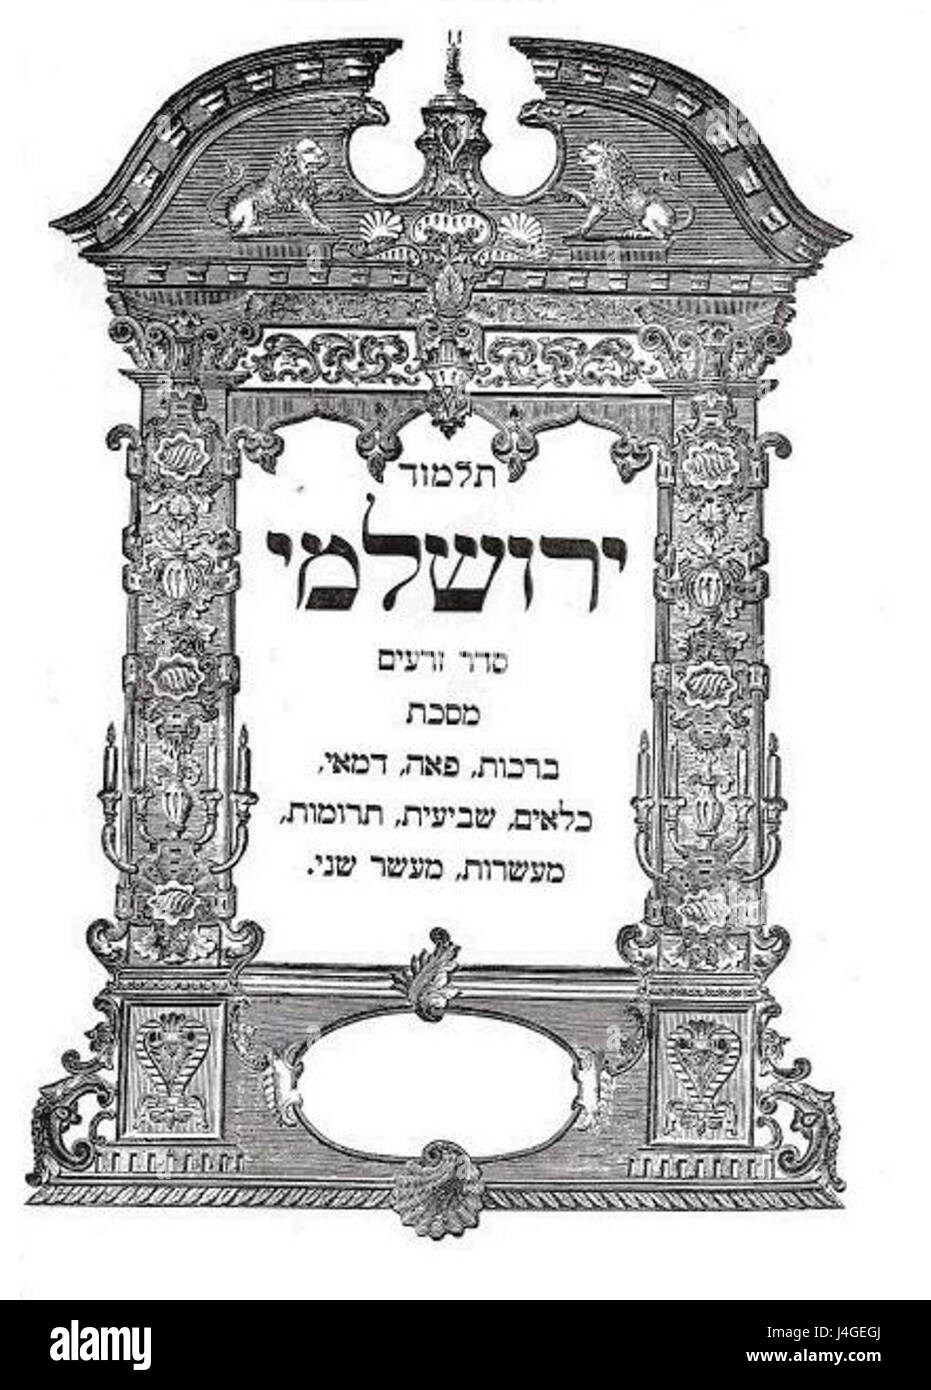 Talmud yerushalmi front page Stock Photo